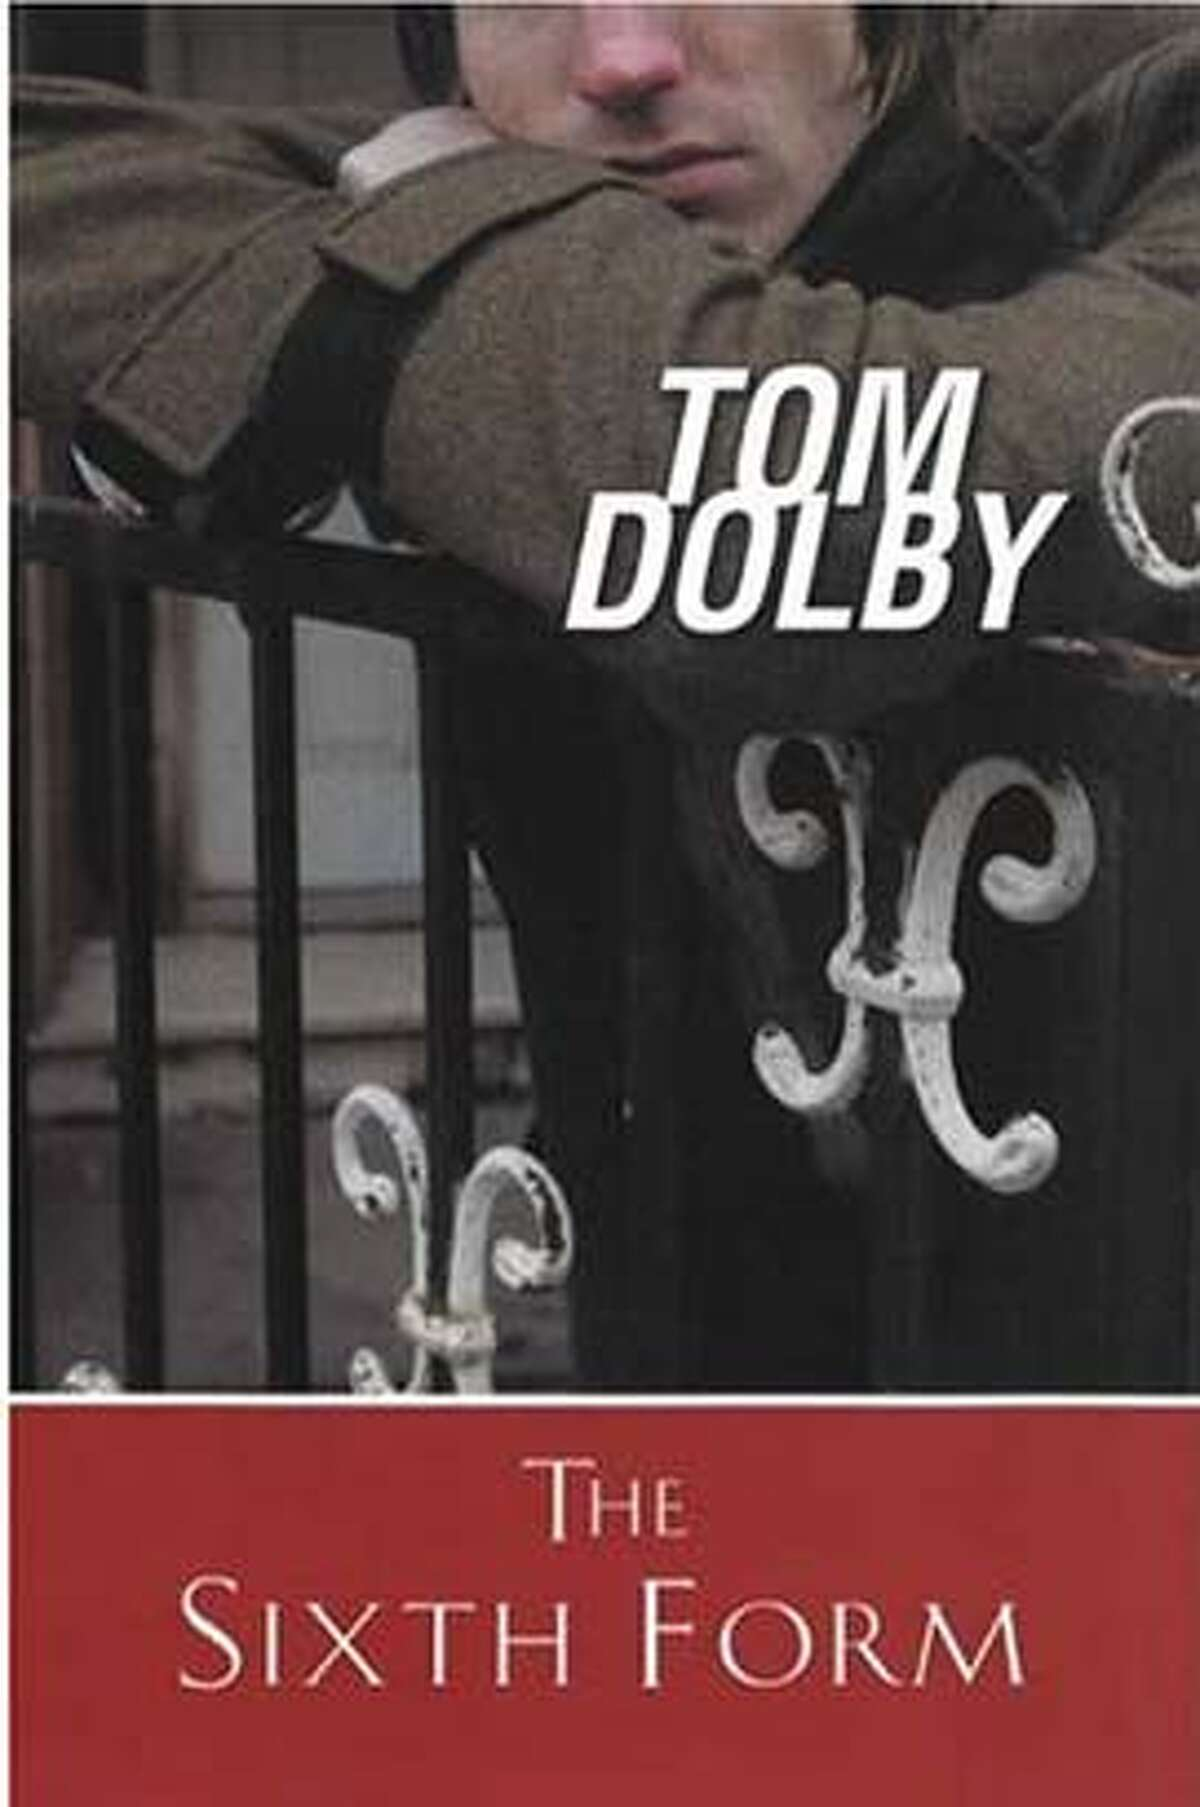 The Sixth Form by Tom Dolby (Hardcover